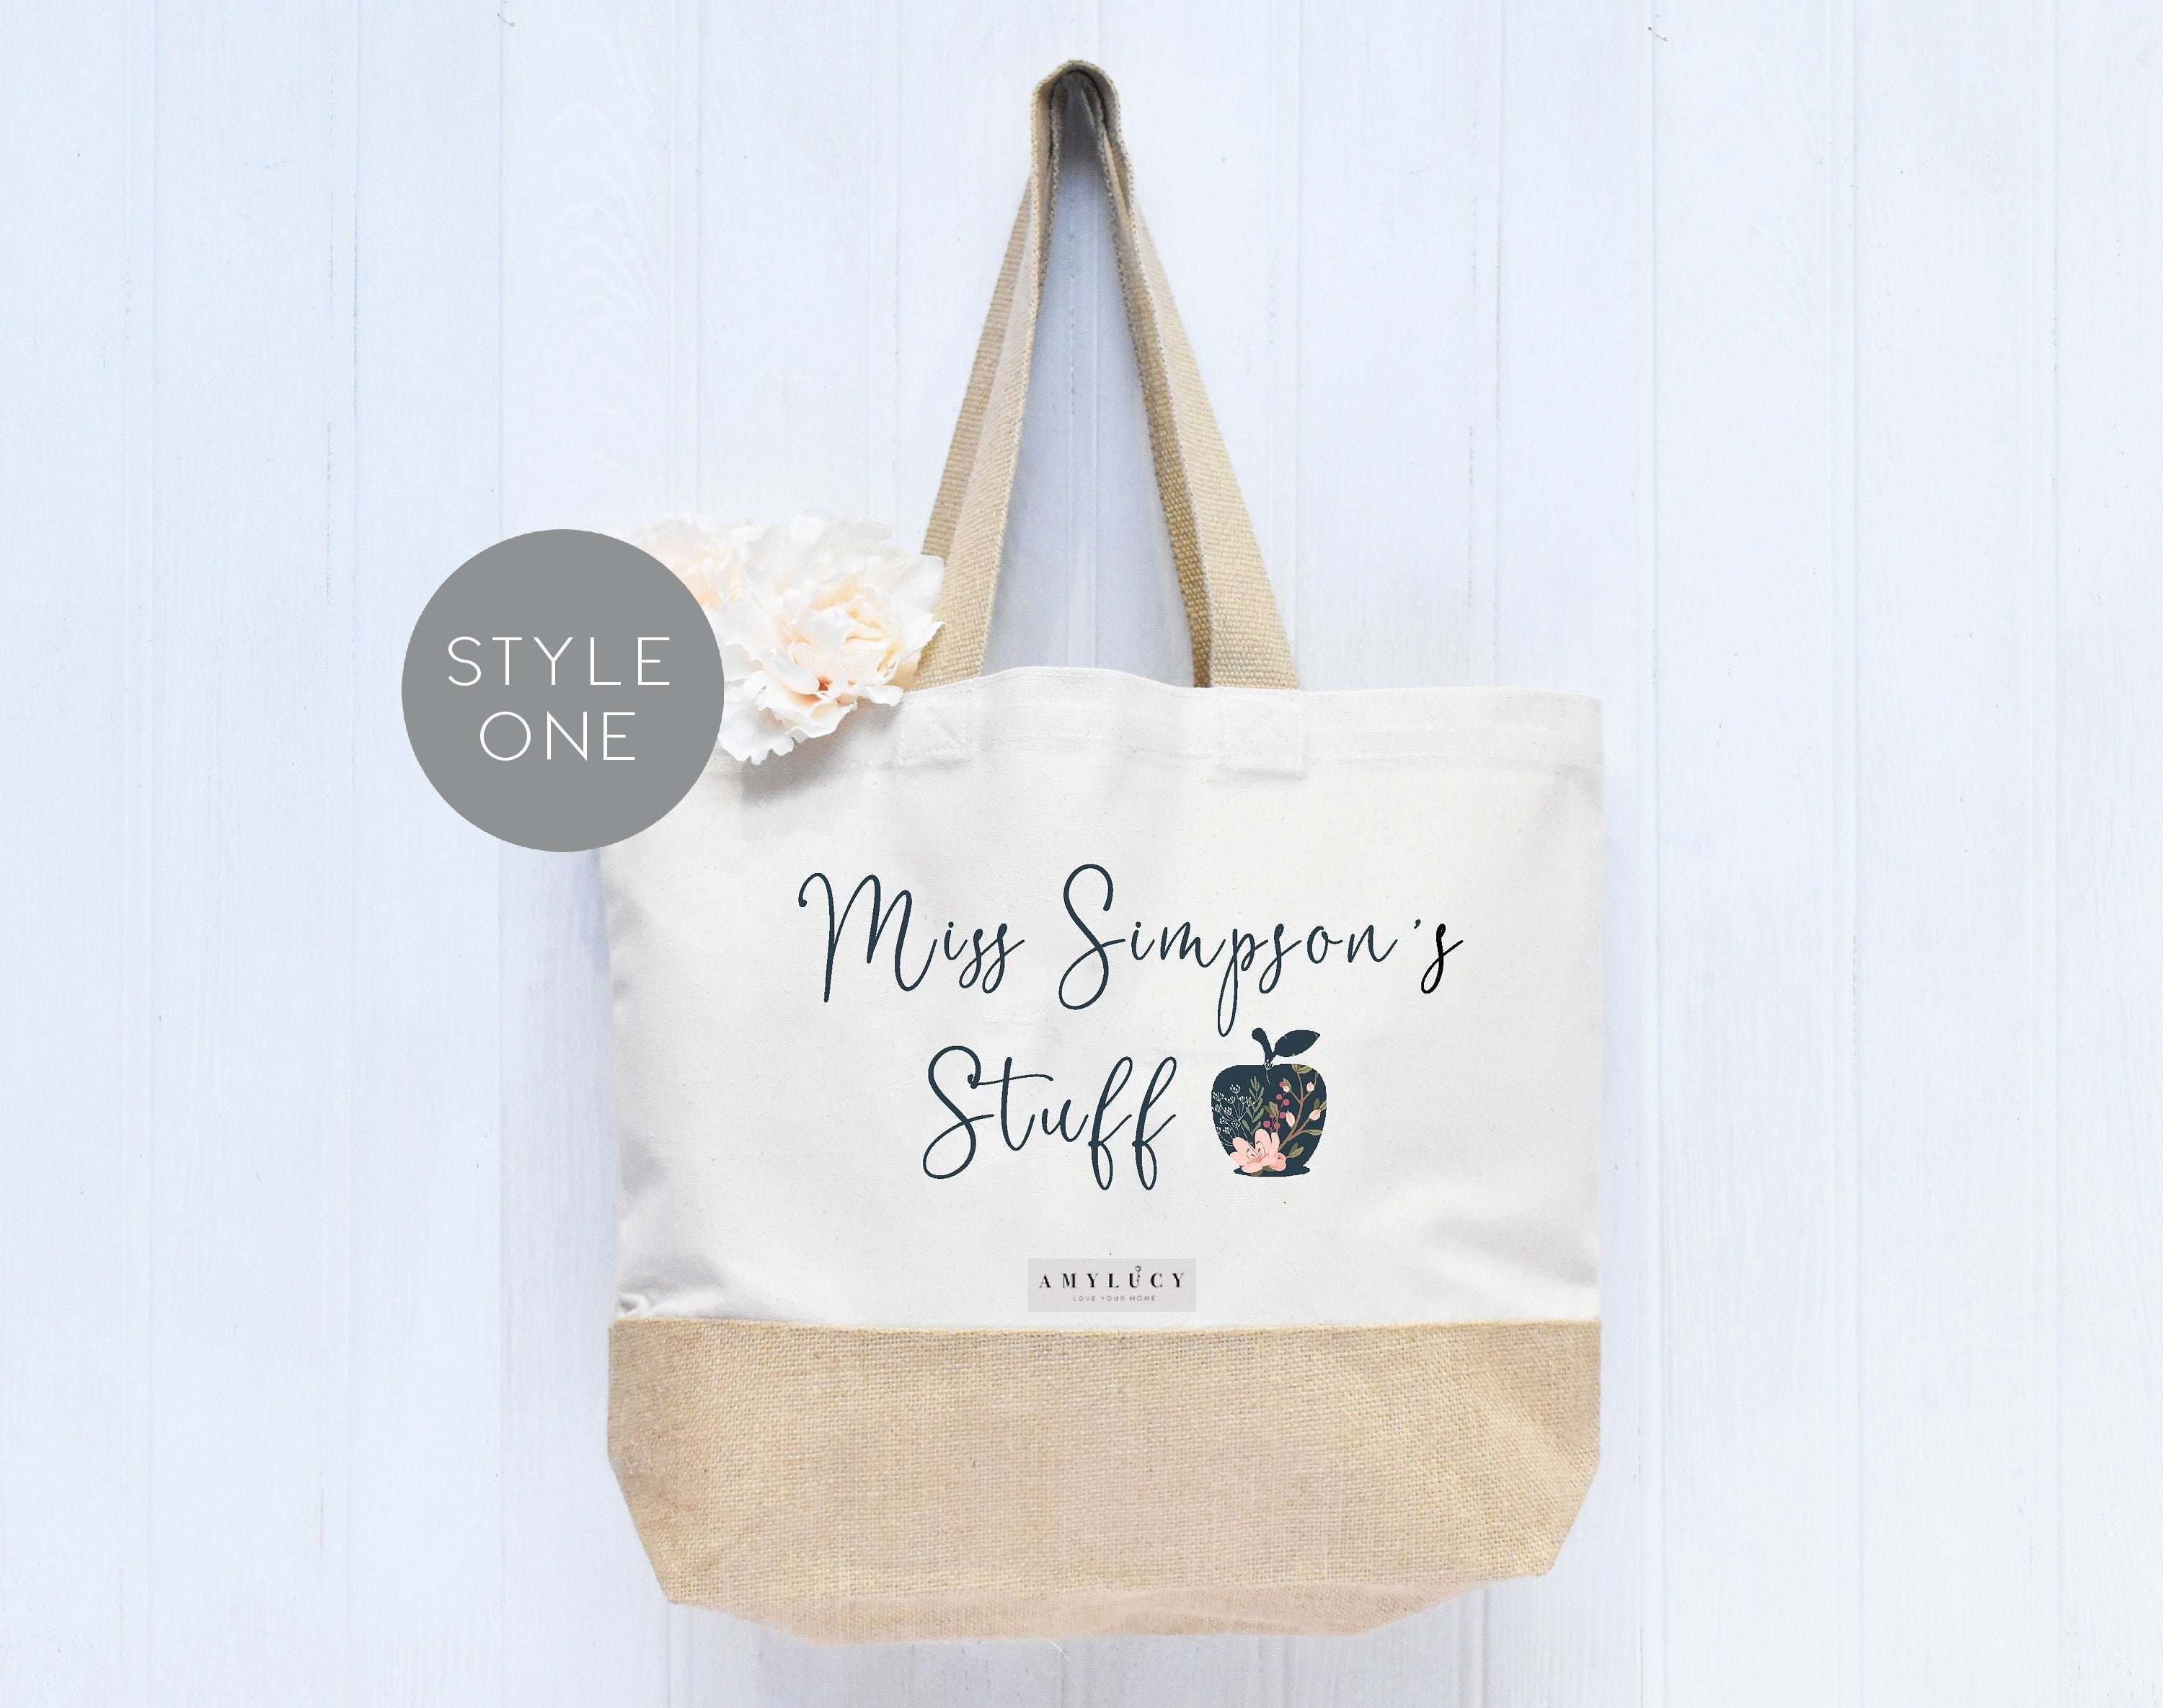 Personalized Tote Bag  Personalized Teacher Tote   Personalized Teacher Gift  Tote Bags For Women  Teacher Tote Bag